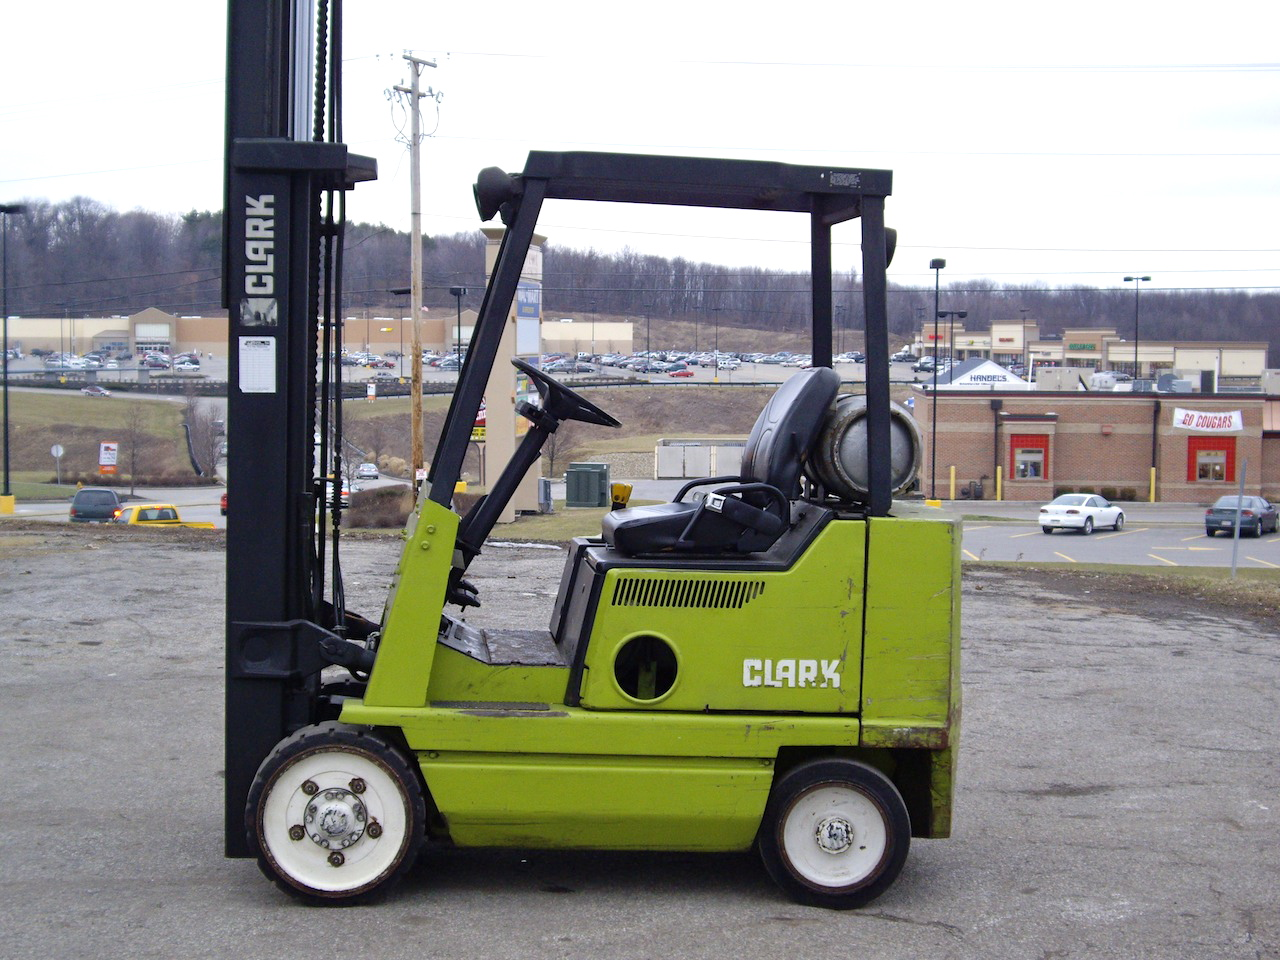 Clark forklift photo - 5